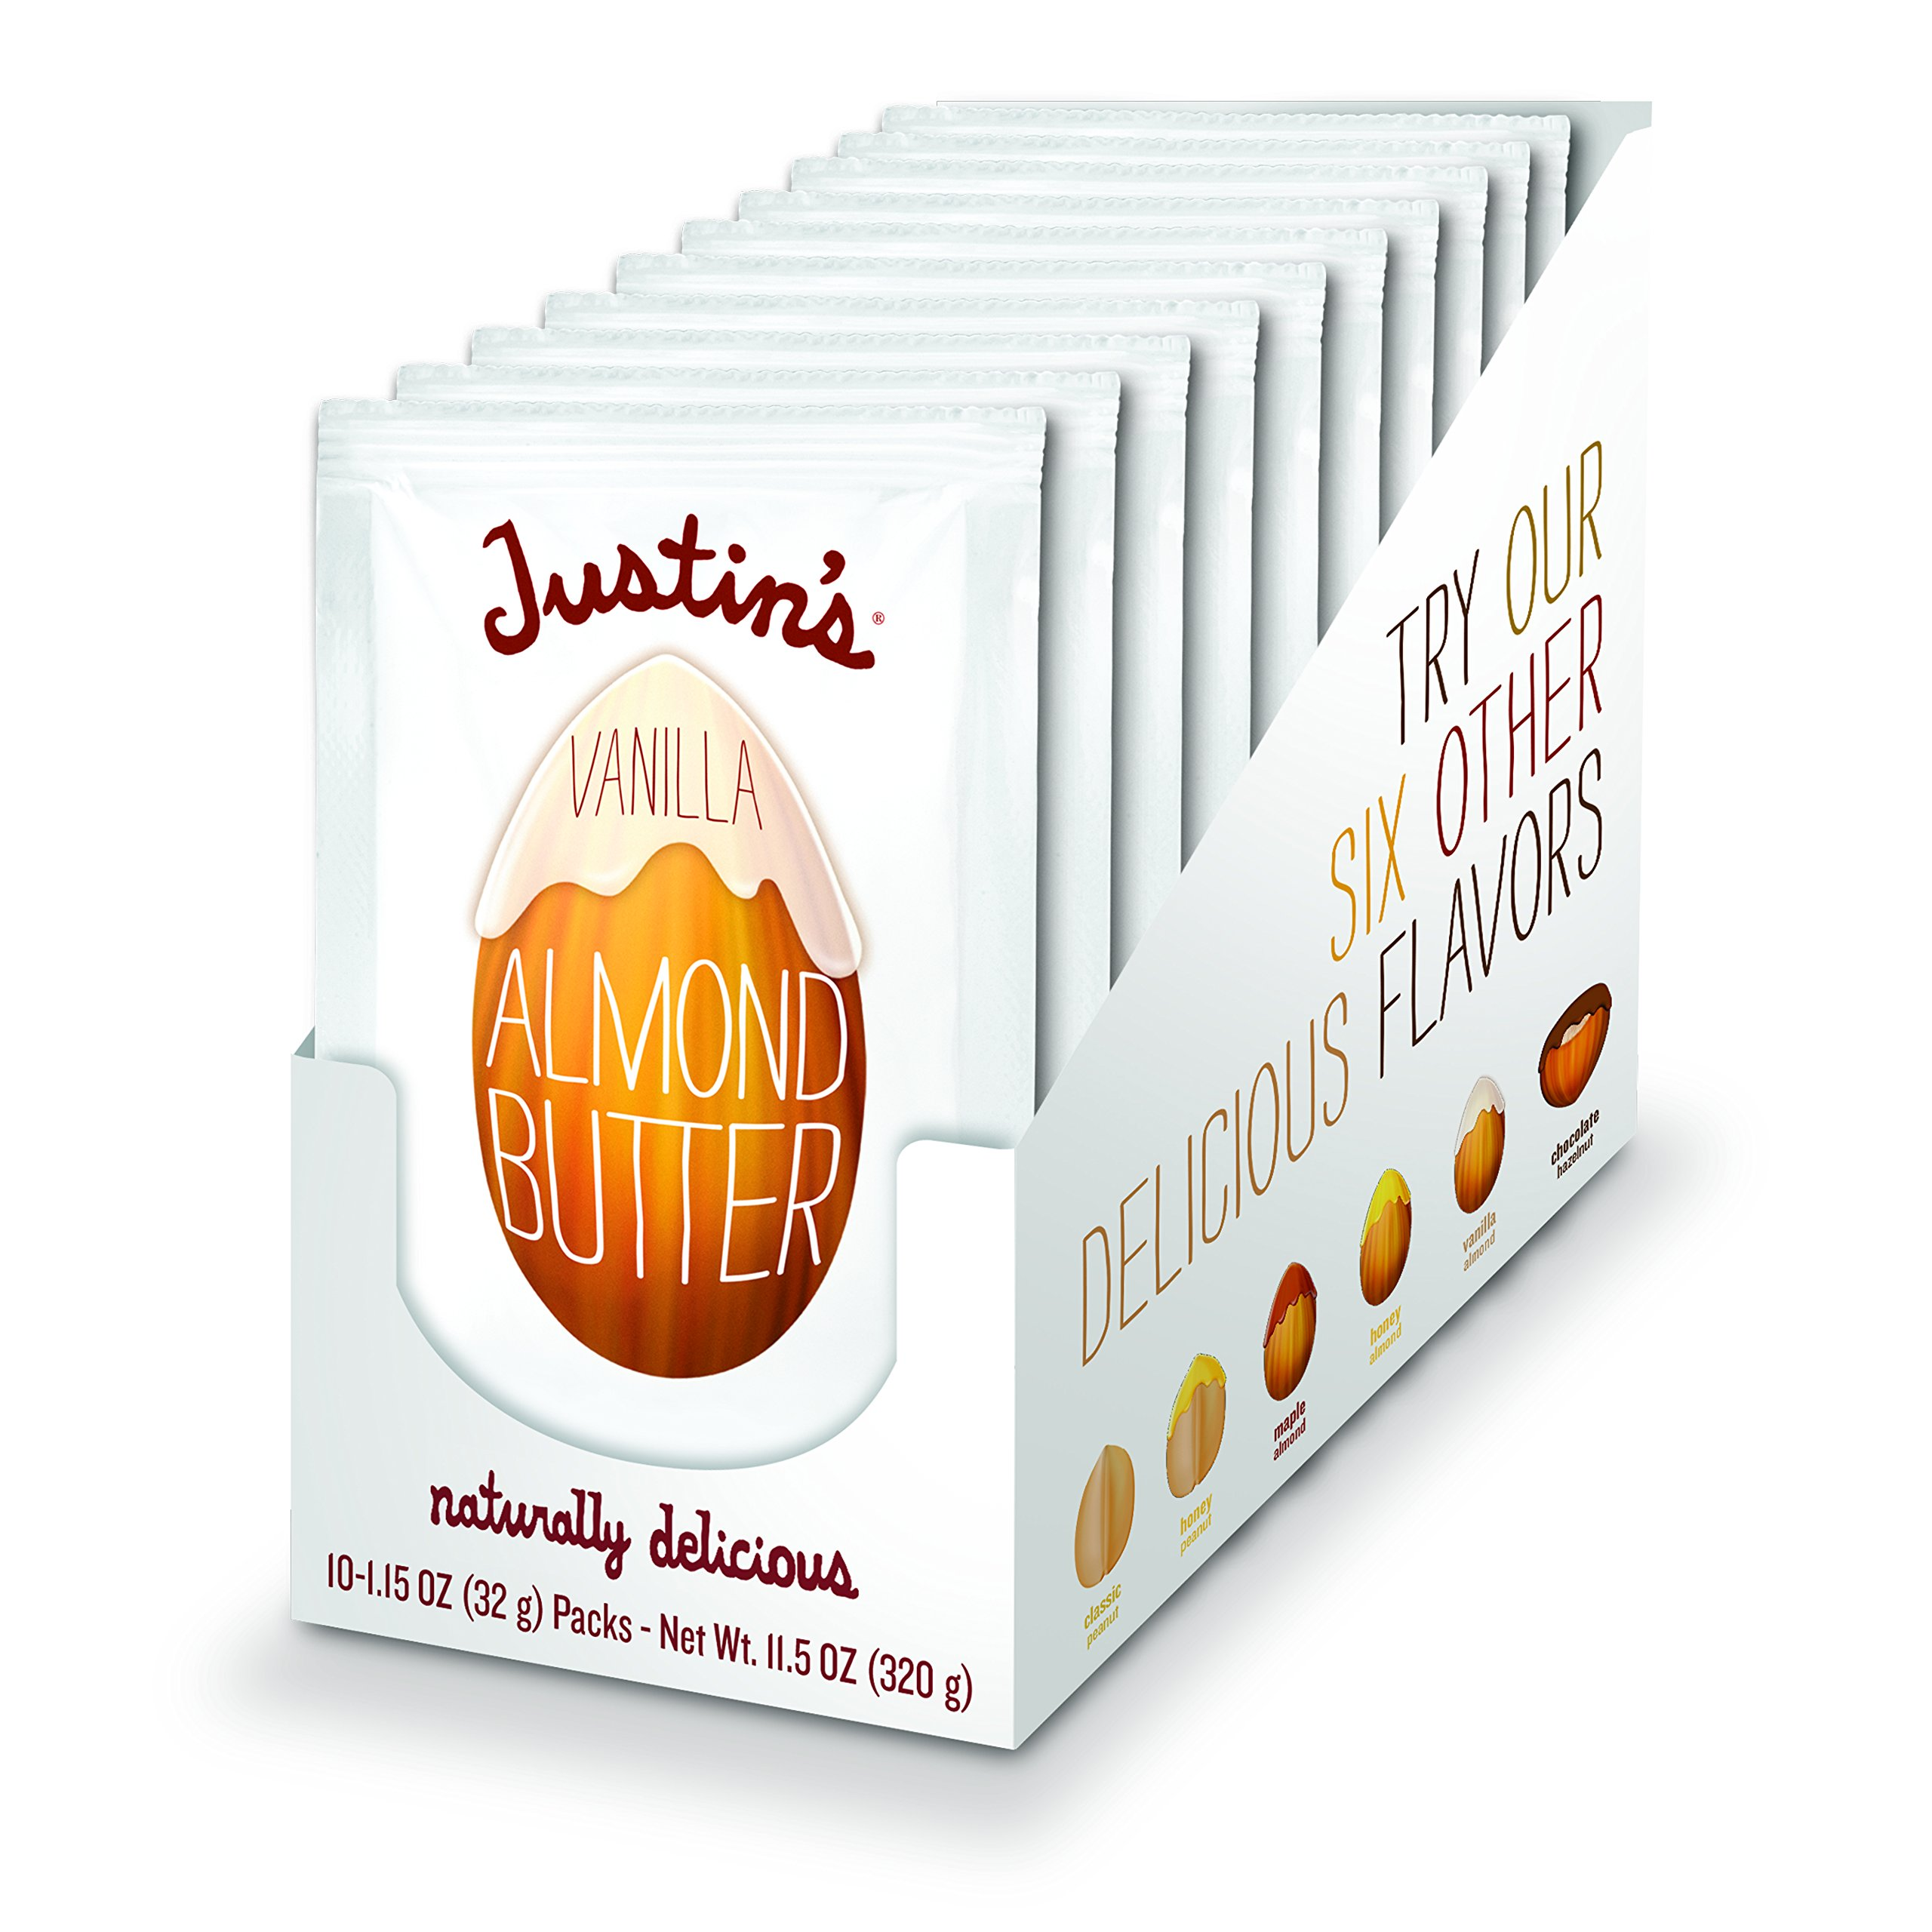 Vanilla Almond Butter Squeeze Packs by Justin's, Gluten-free, Vegan, Responsibly Sourced, Pack of 10 (1.15oz each)